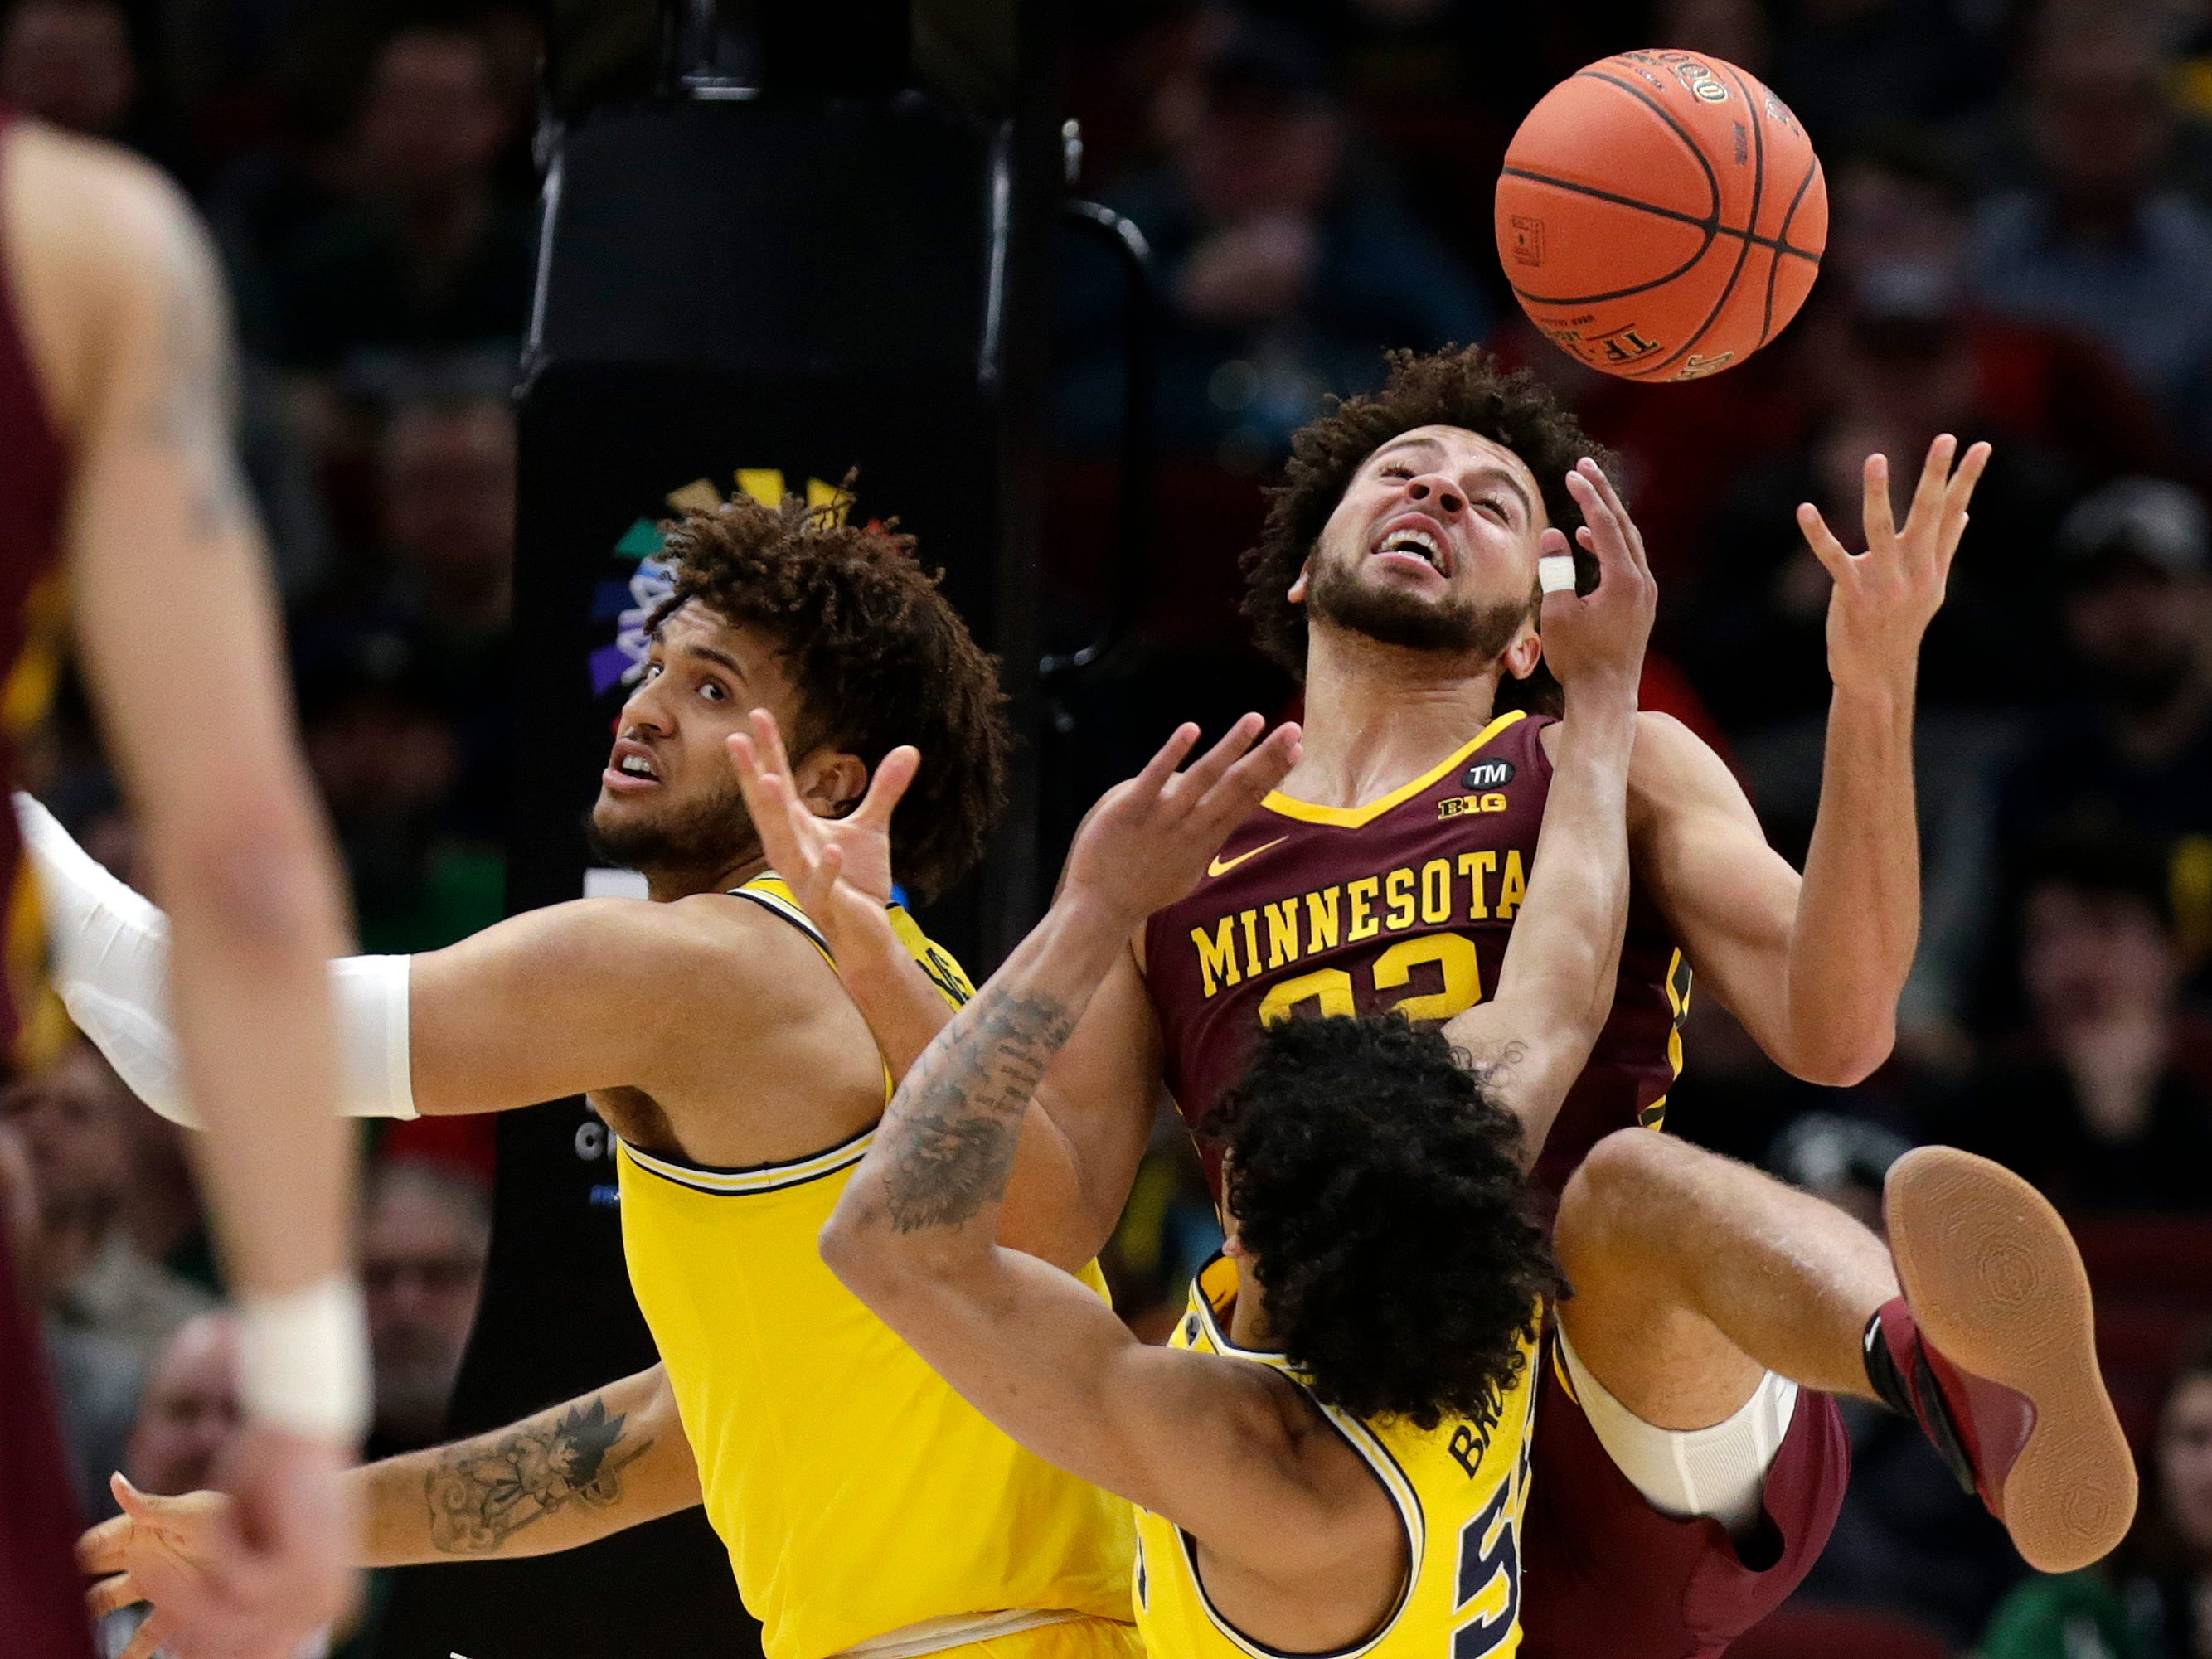 Minnesota's Gabe Kalscheur, right, battles for a rebound against Michigan's Eli Brooks and Isaiah Livers, left, during the first half.